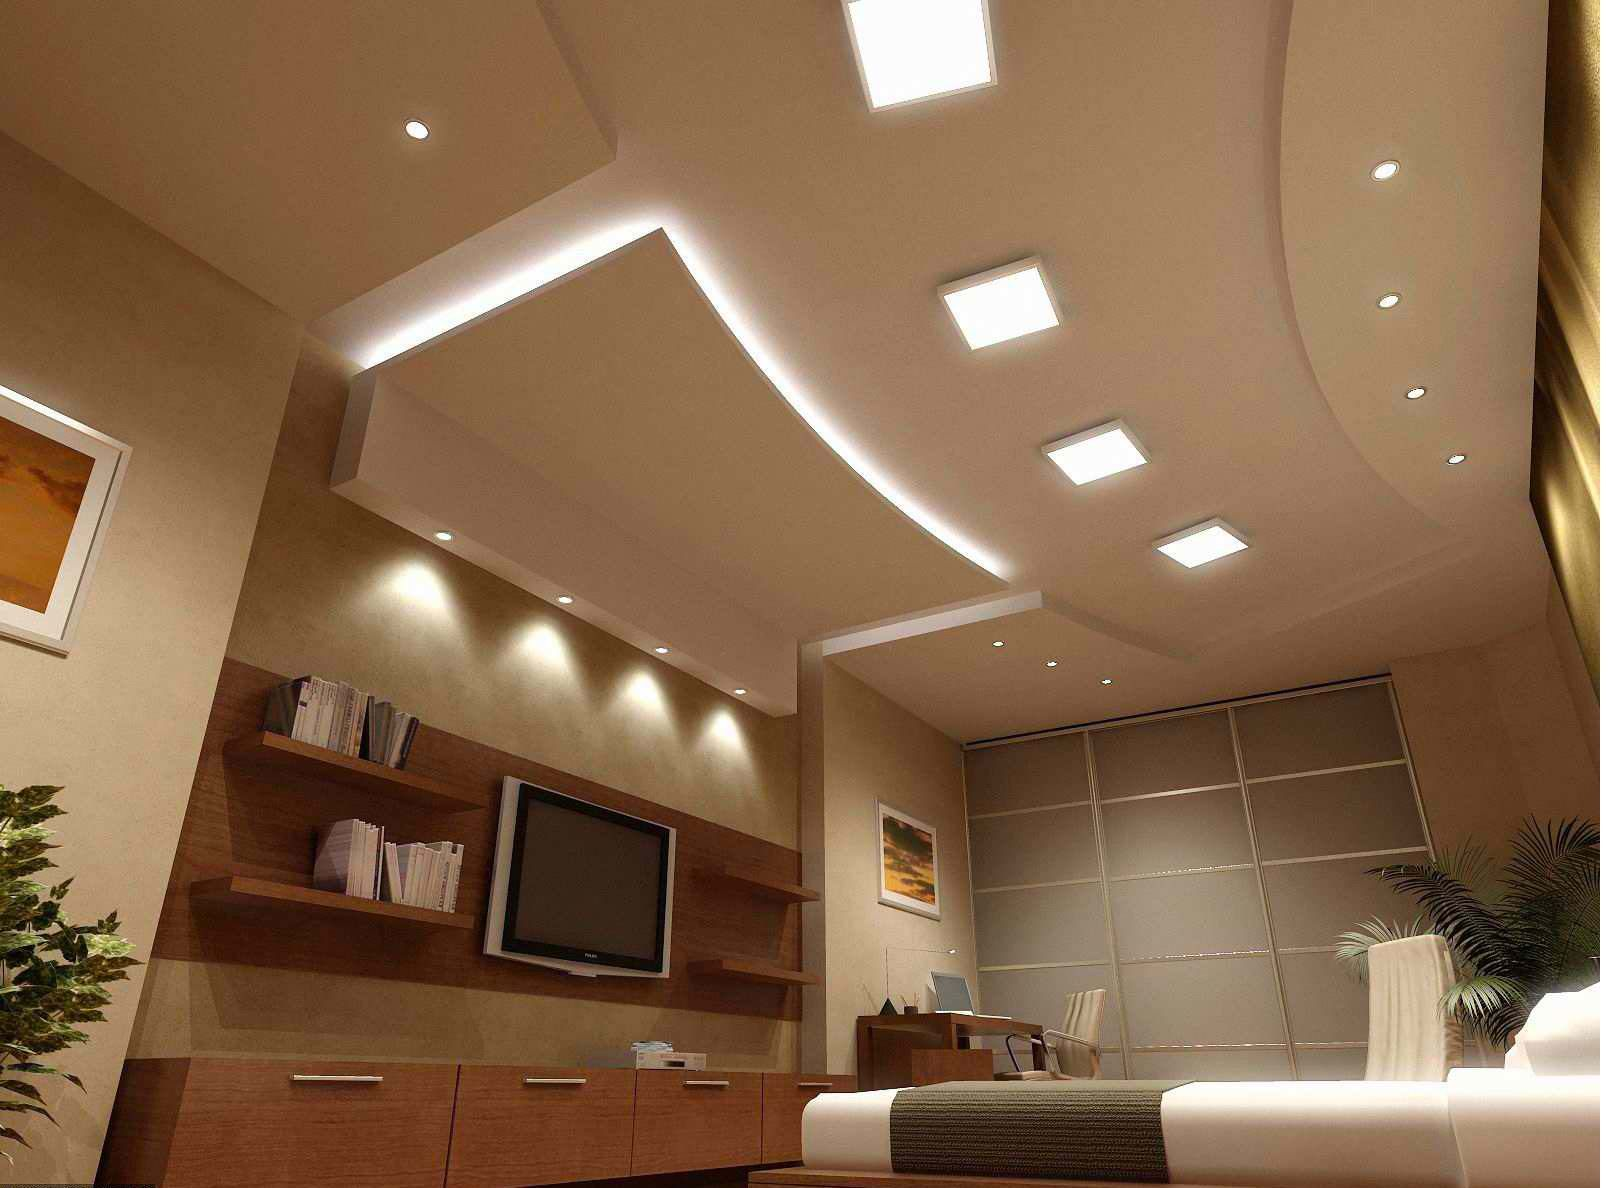 Ceiling Designs | Home Designs #KBHomes